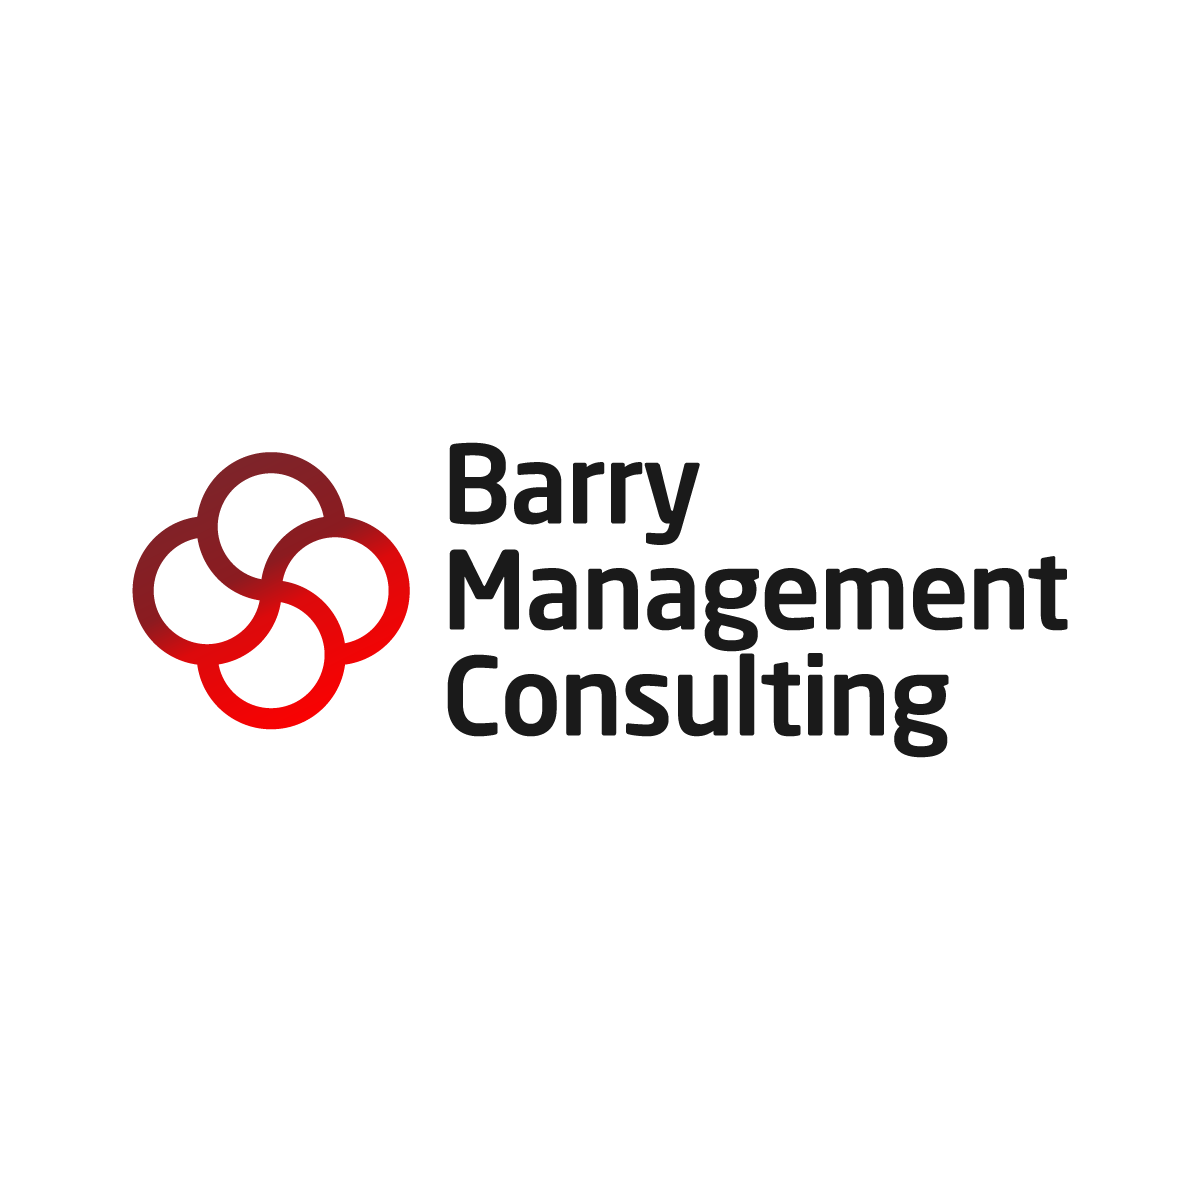 Barry Management Consulting (BMC)